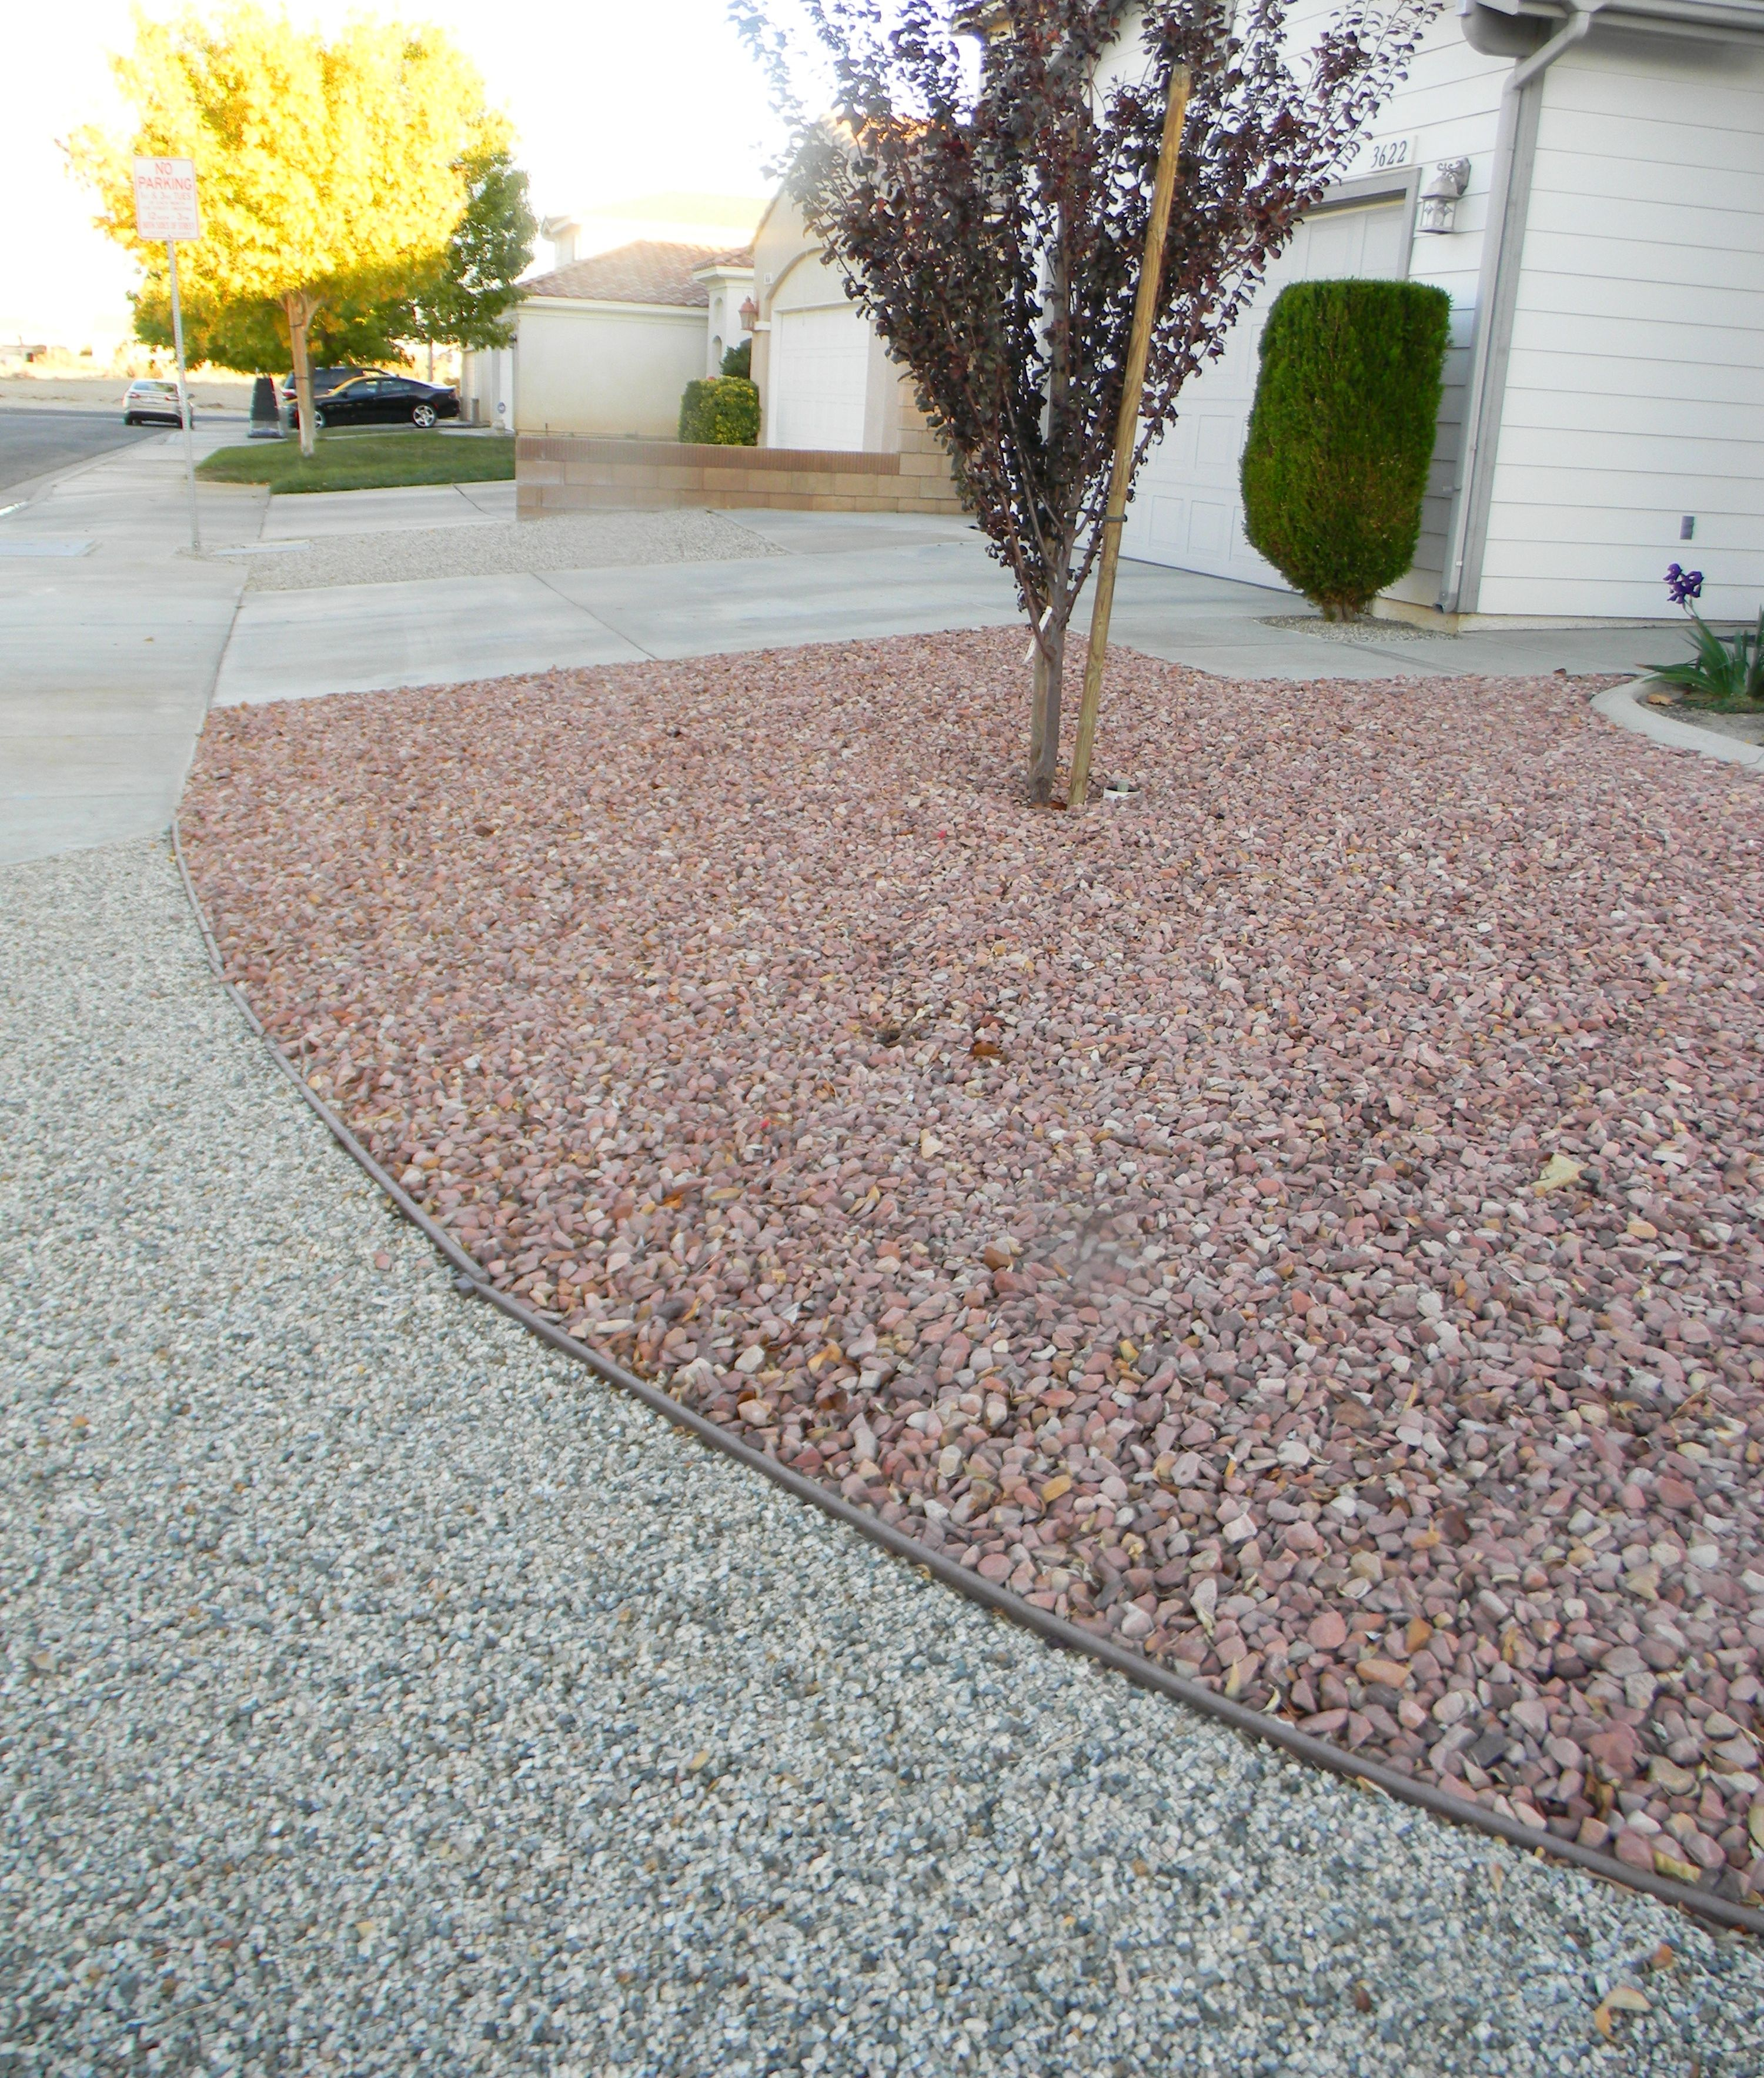 Vegas Pink Gravel Behind A Band Of Grey Granite Pea Gravel Free Landscape Design Gravel Gravel Prices